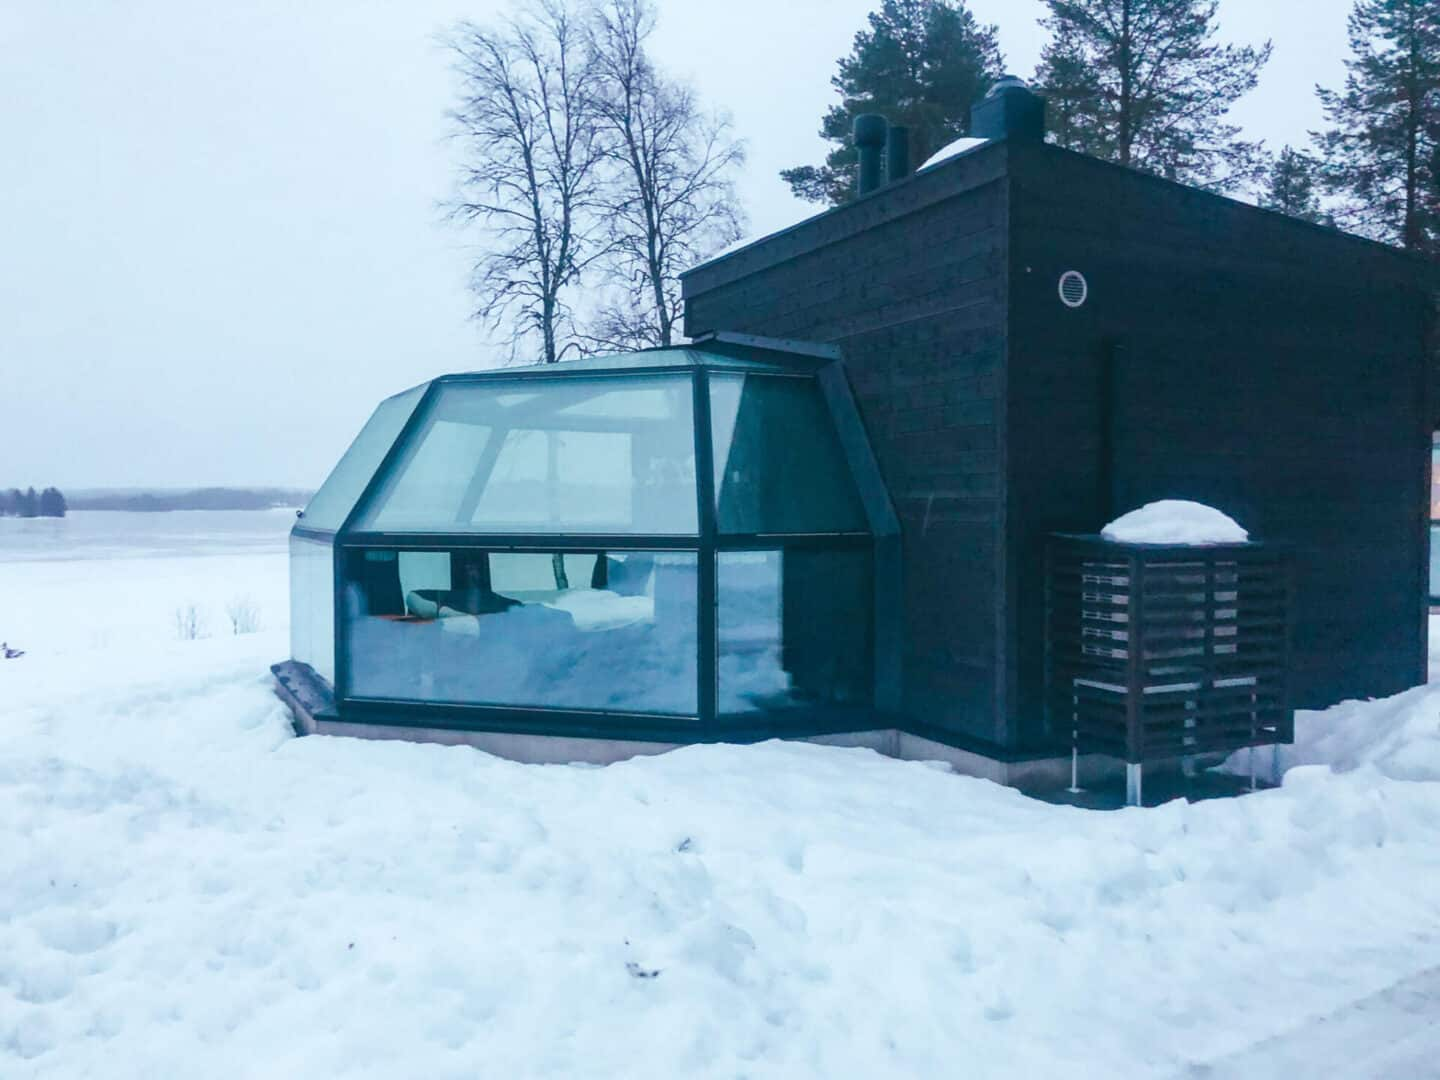 A glass igloo surrounded by snow